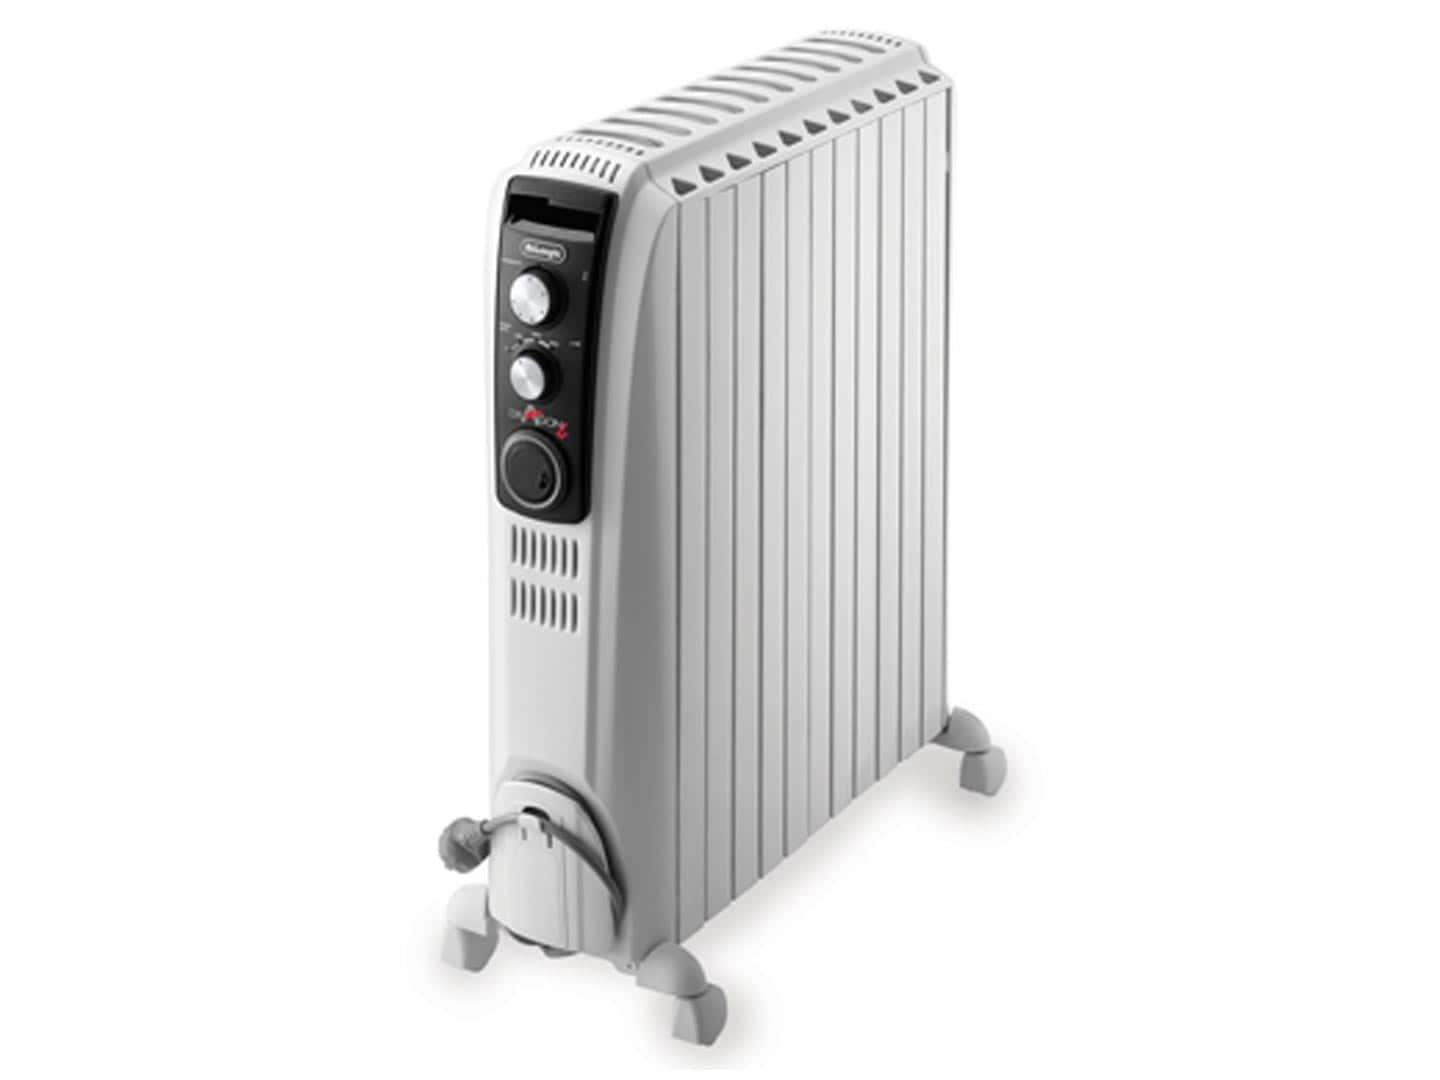 hight resolution of dragon4 oil column heater 2400w with timer white trd4 2400mt oil heaters